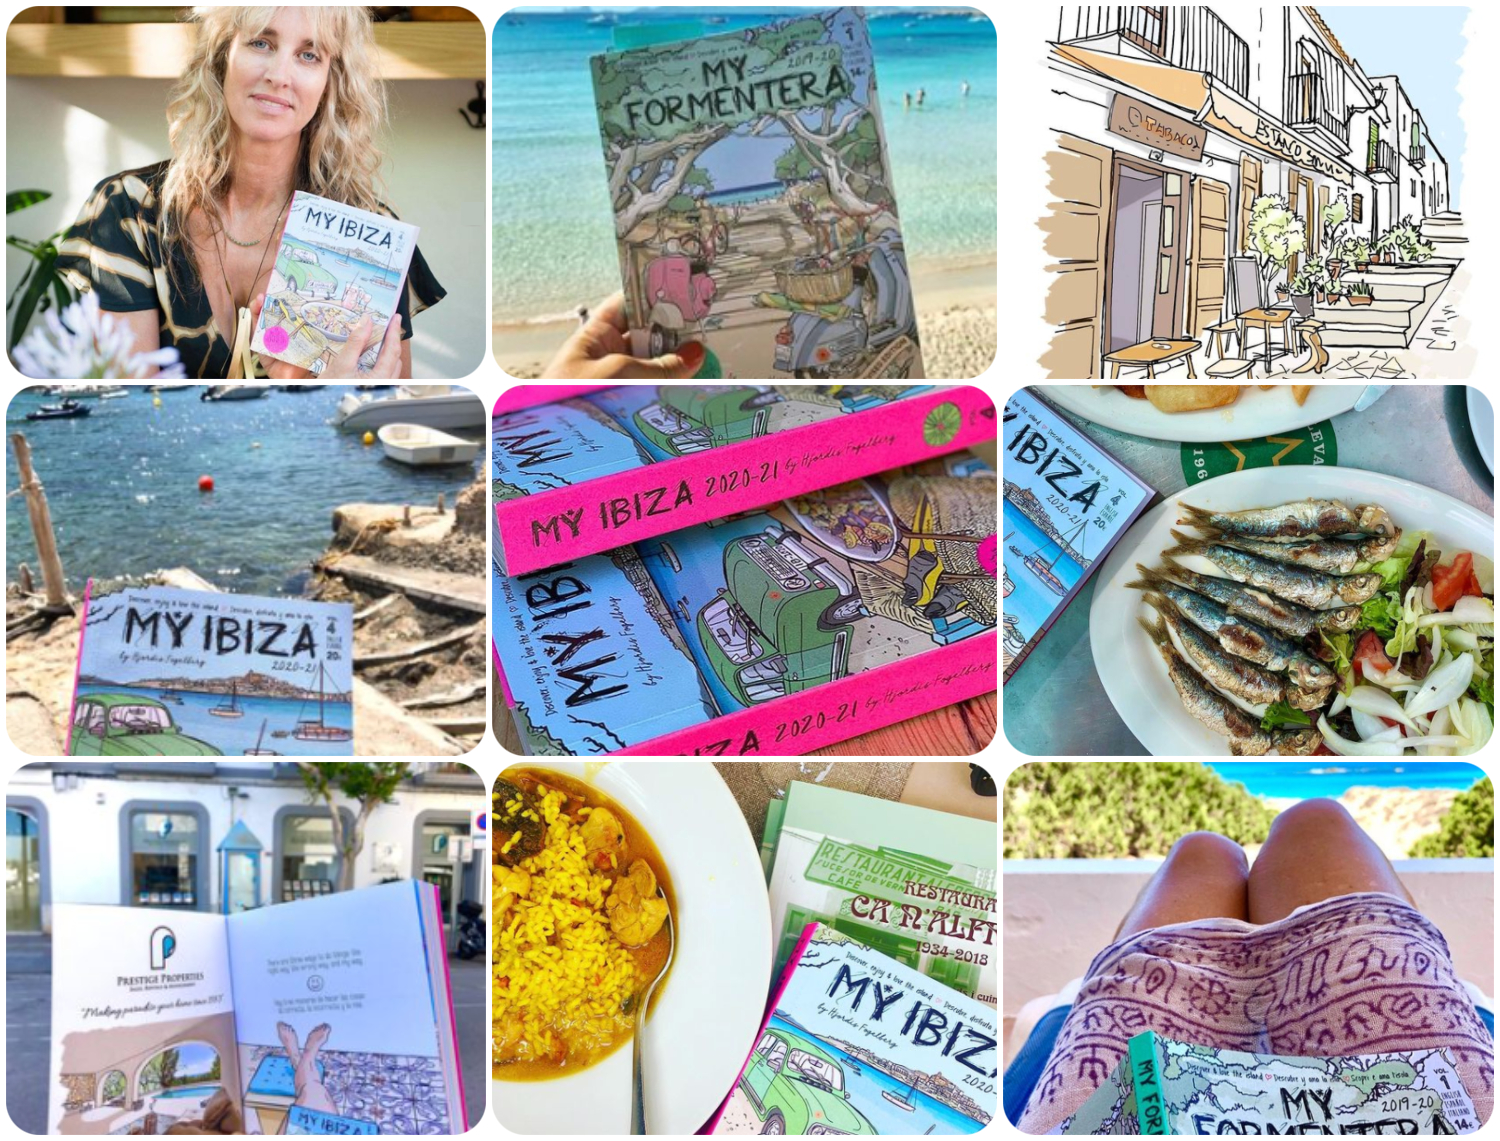 Discover the island's secrets with My Ibiza and Formentera